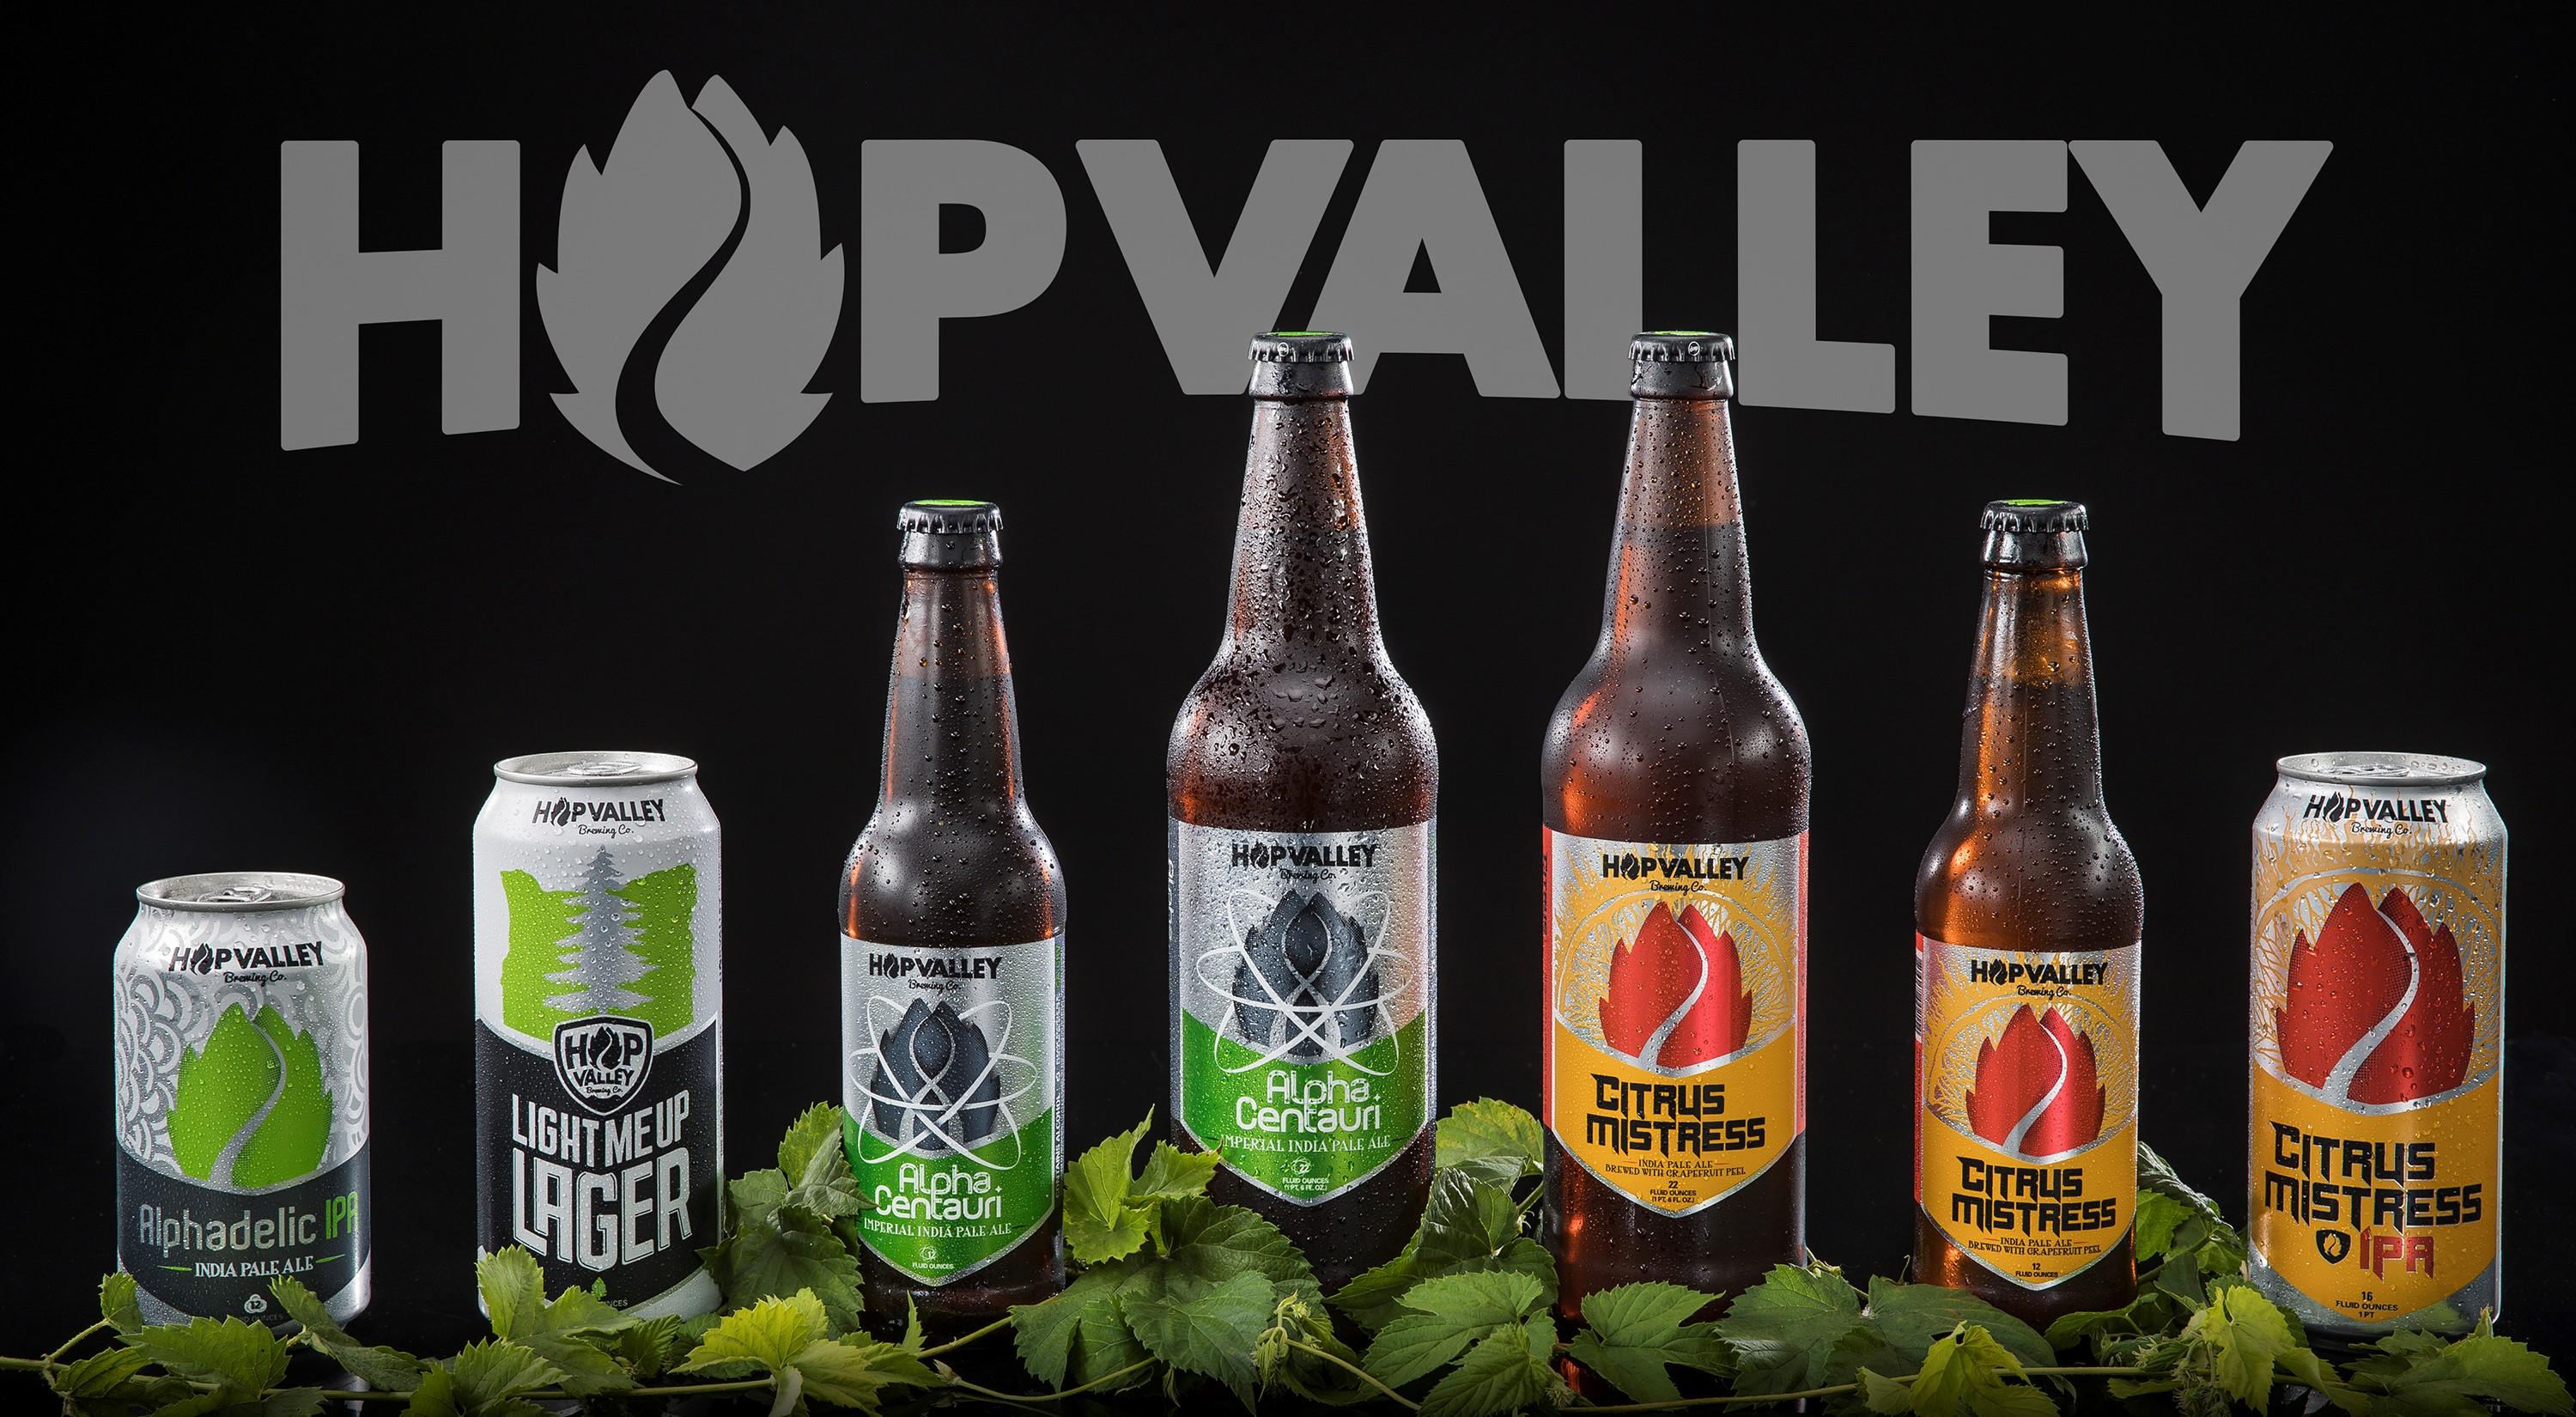 MillerCoors' Tenth and Blake division has made a majority investment in Oregon-based Hop Valley Brewing Company.